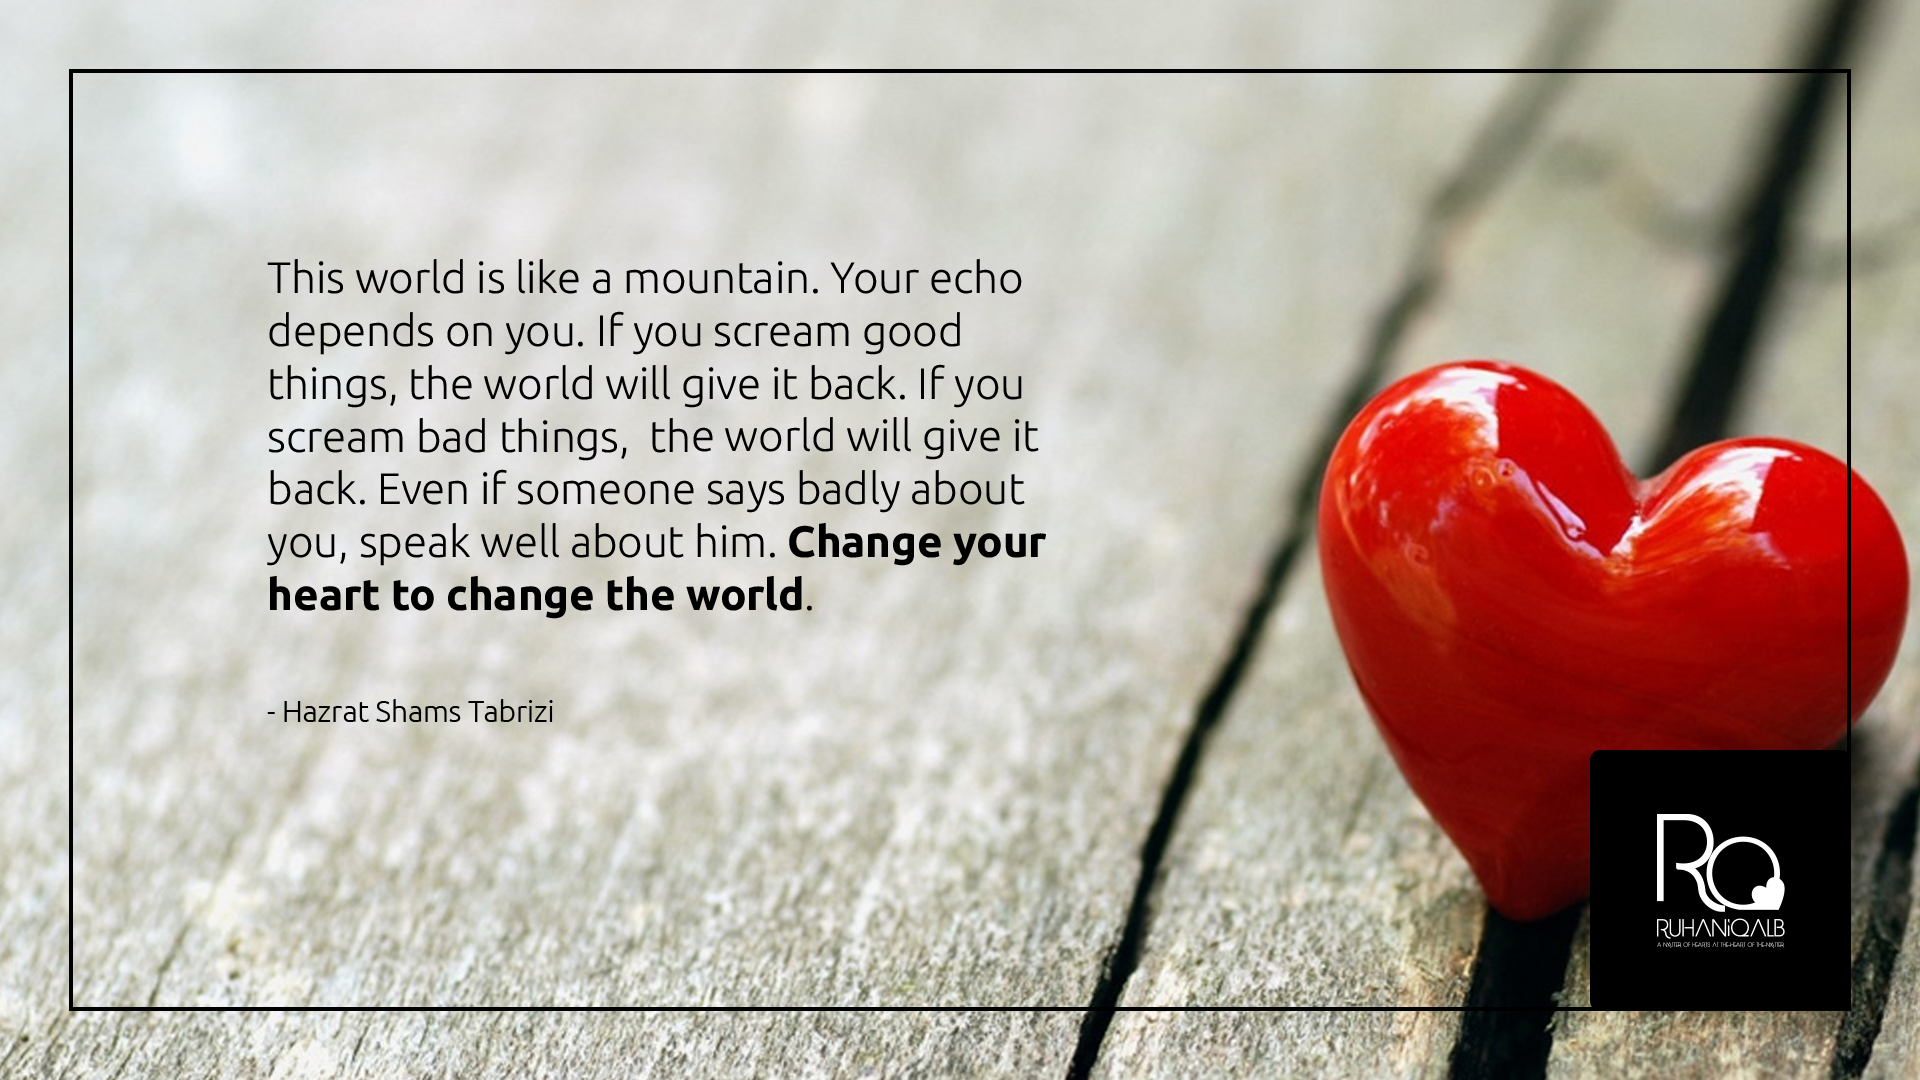 Change-your-heart-to-change-the-world